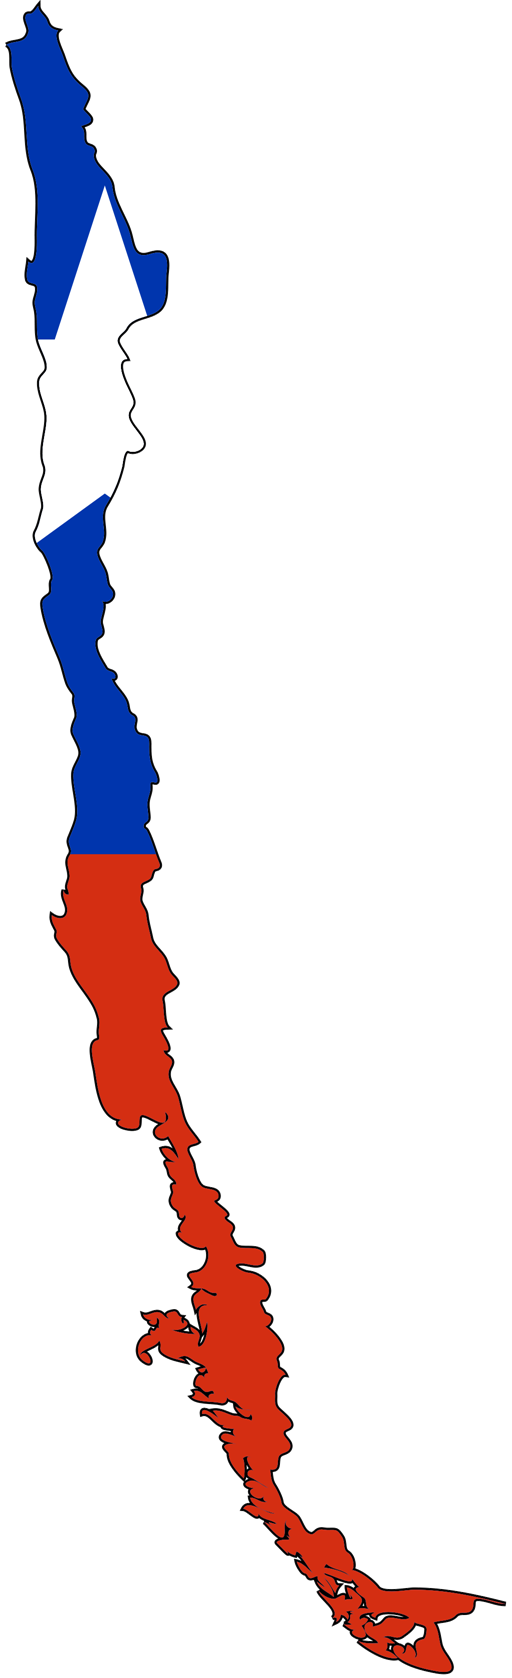 chile_flag_map